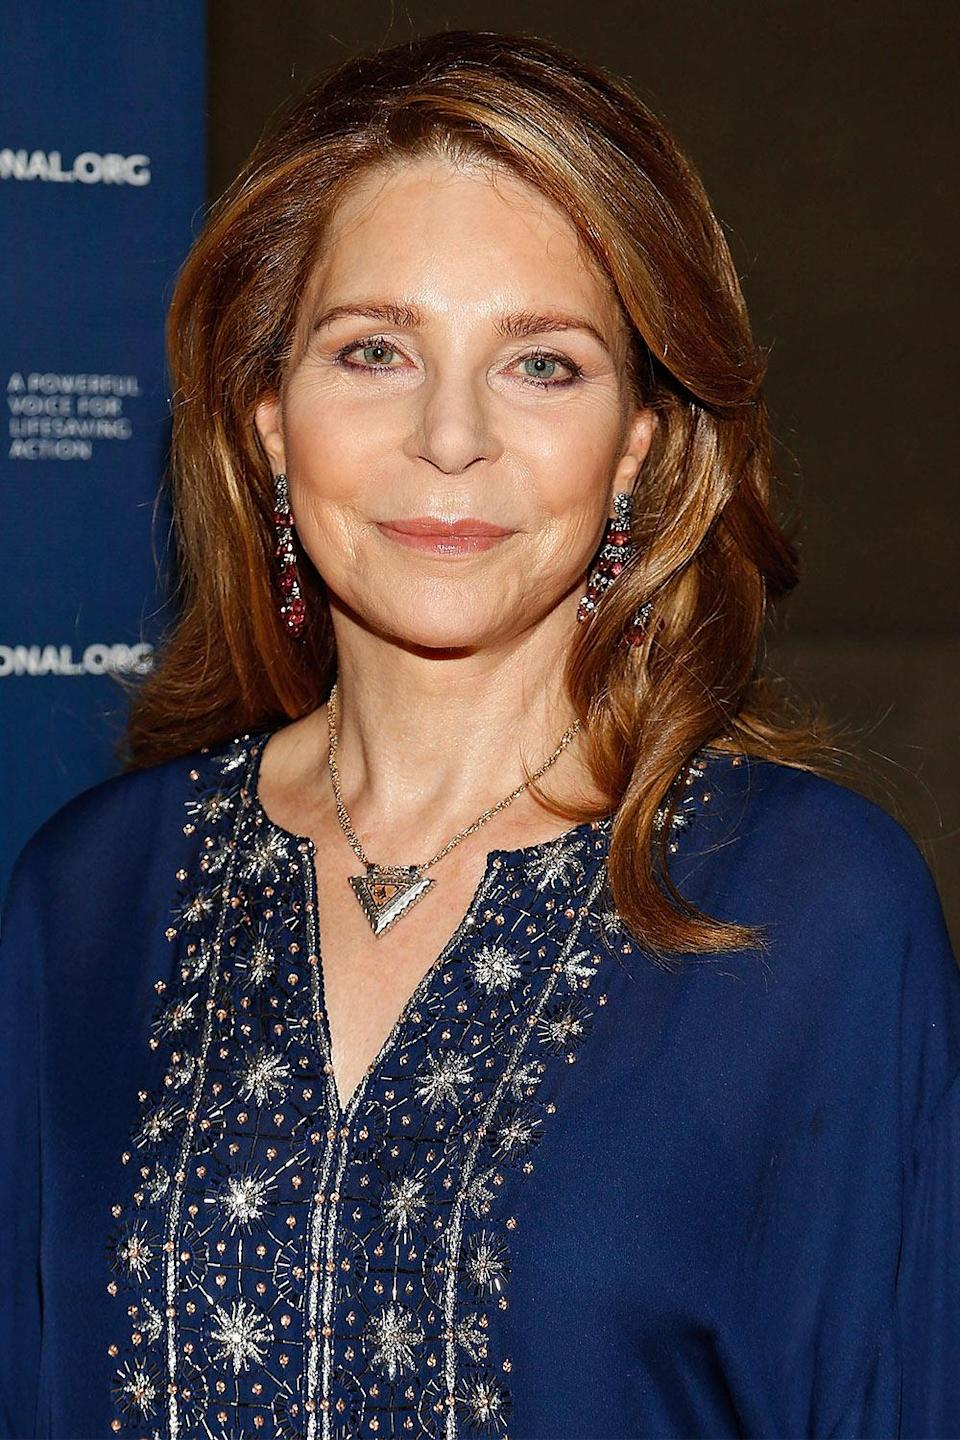 """<p>Queen Noor wrote in her memoir about her husband King Hussein's numb reaction to her suffering a miscarriage — saying others, including his friend the Shah of Iran, who had just been exiled from his country, had suffered far greater misfortunes.</p> <p>""""His response to any personal concern I expressed would be to counter with some greater problem that he was suffering from, in order to put my problem in perspective,"""" she wrote, adding, """"This man, who had the biggest heart in the world, could not talk about things that were personally painful to him precisely because he felt that pain so deeply. He simply could not handle it.""""</p>"""